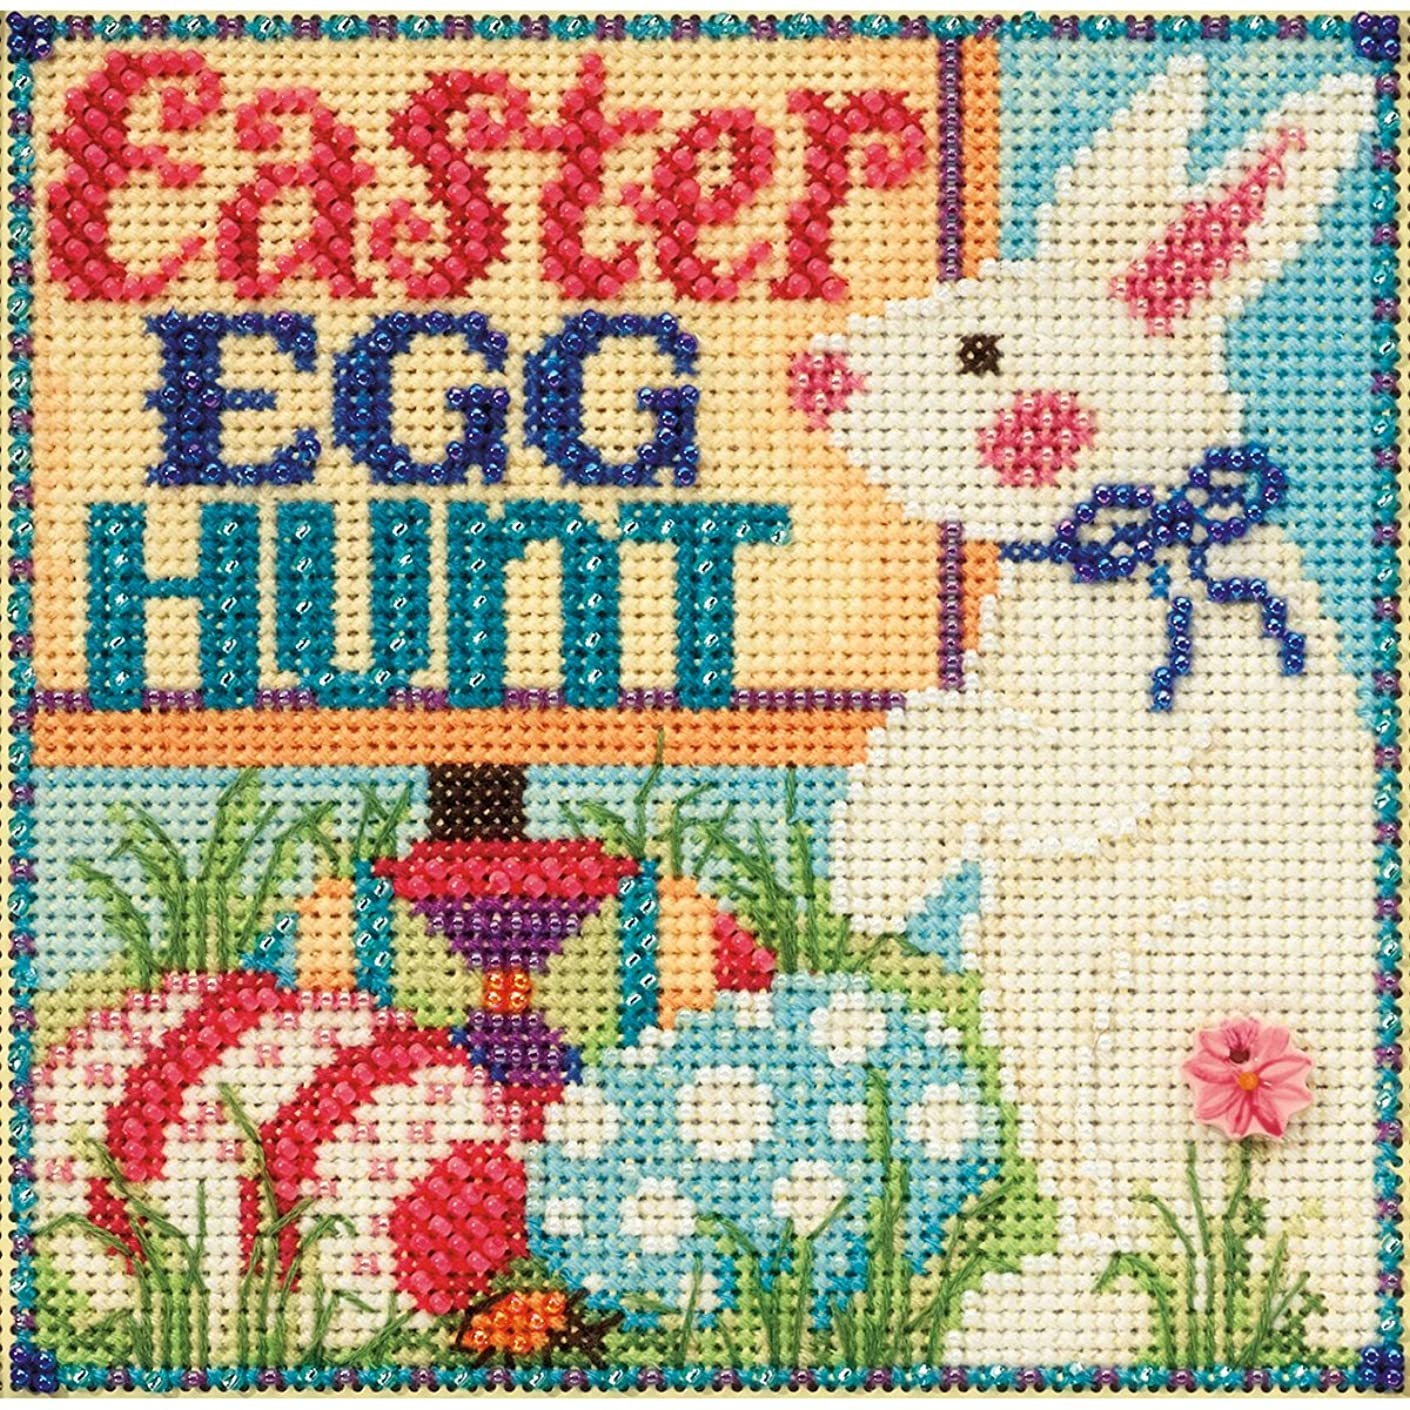 Egg Hunt Beaded Counted Cross Stitch Kit Mill Hill 2015 Buttons & Beads Spring MH145106